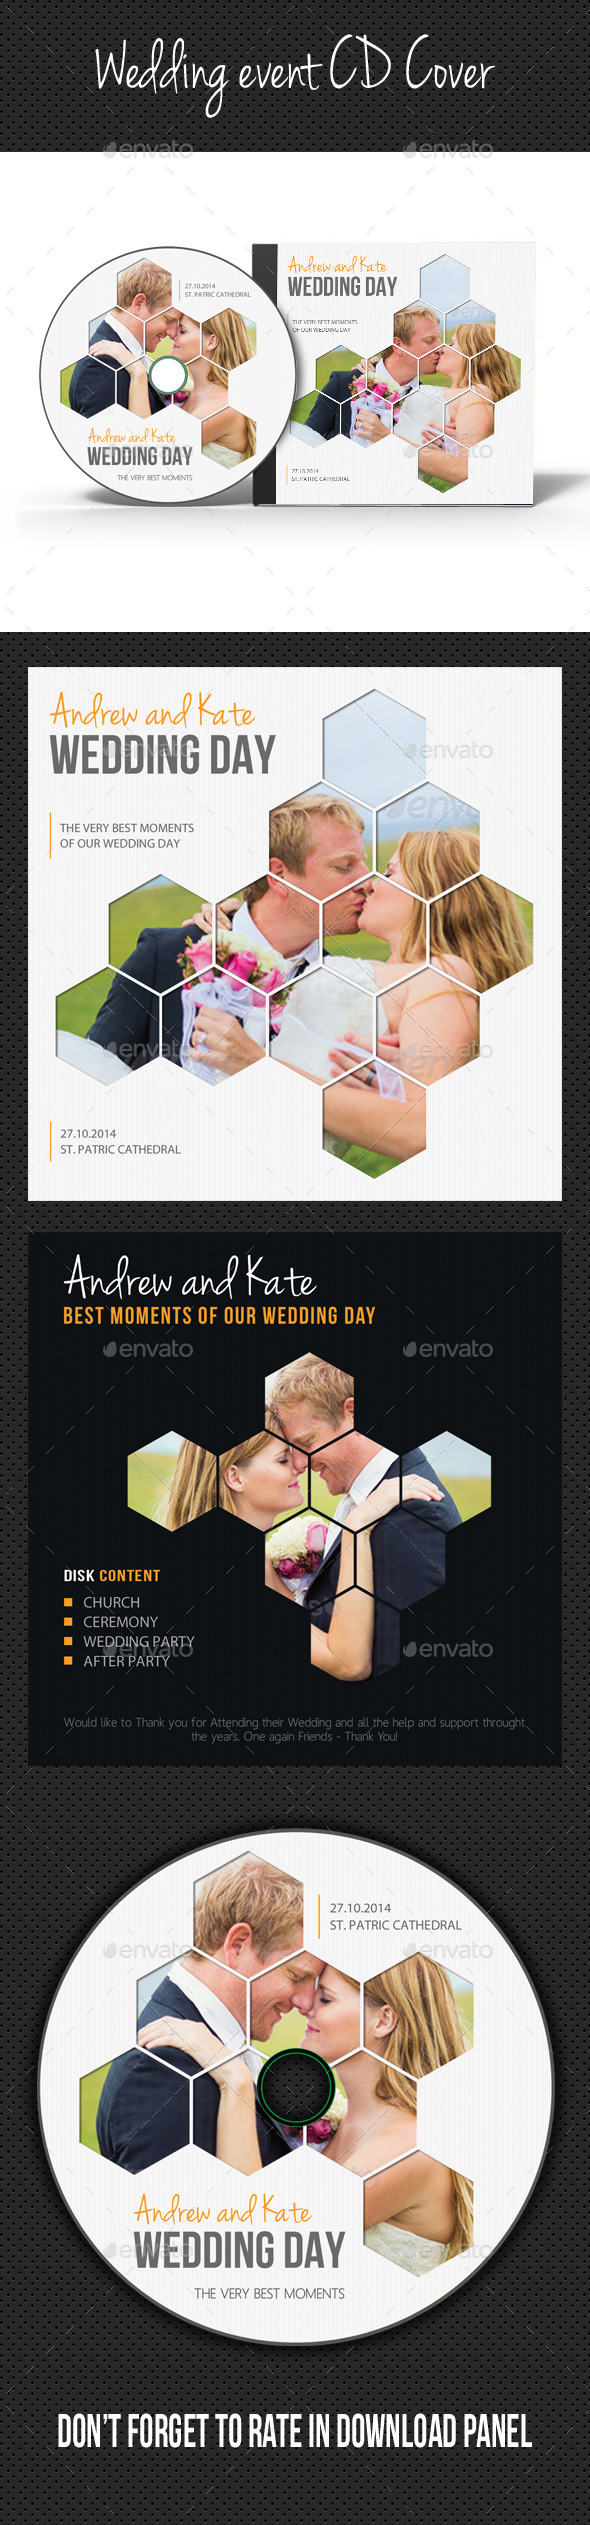 Wedding Event CD Cover V06 - CD & DVD Artwork Print Templates